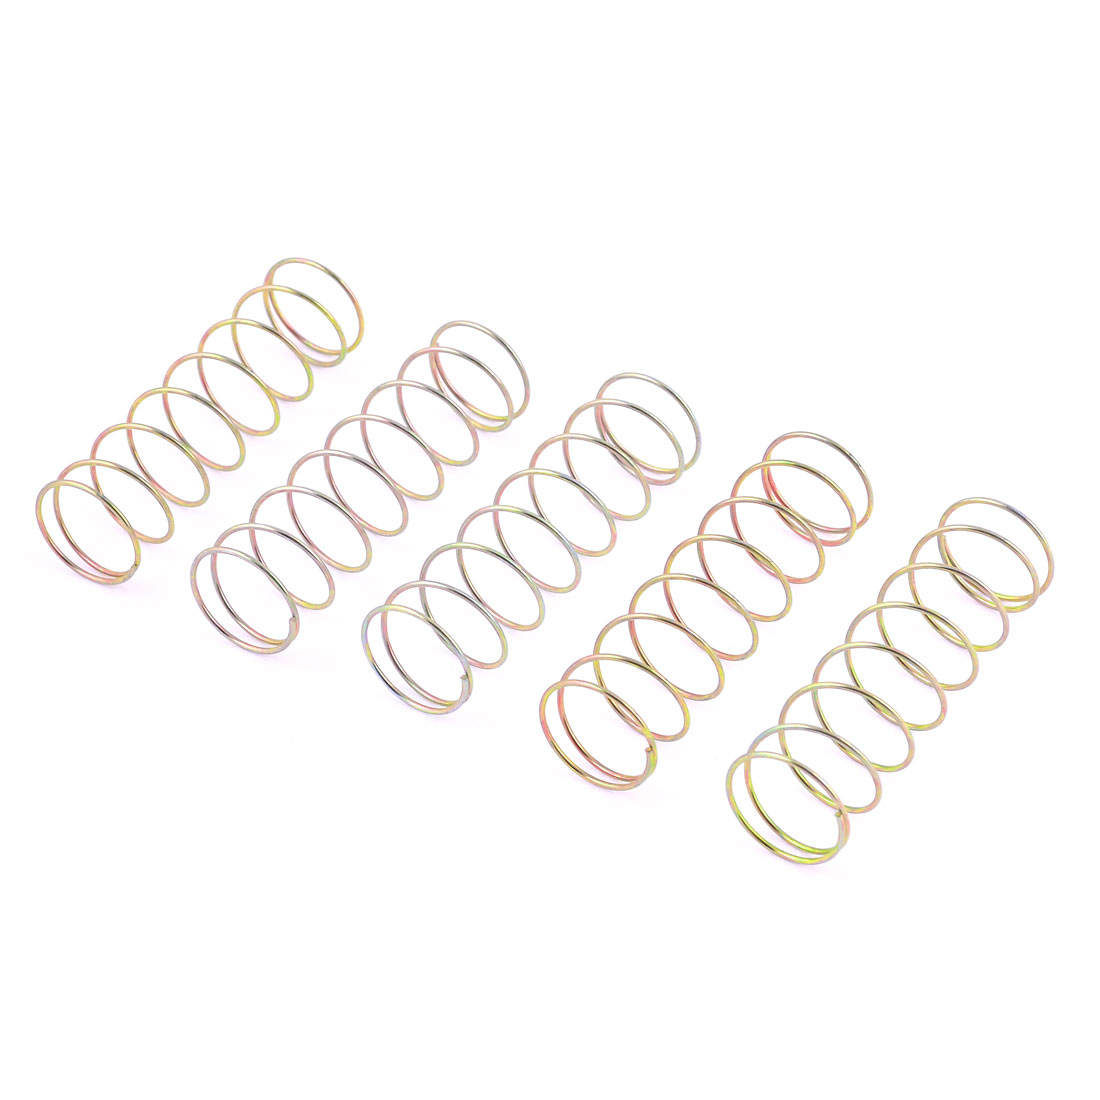 5pcs Bronze Tone Washing Machine Water Drain Spring Replacement 9cm x 2.6cm